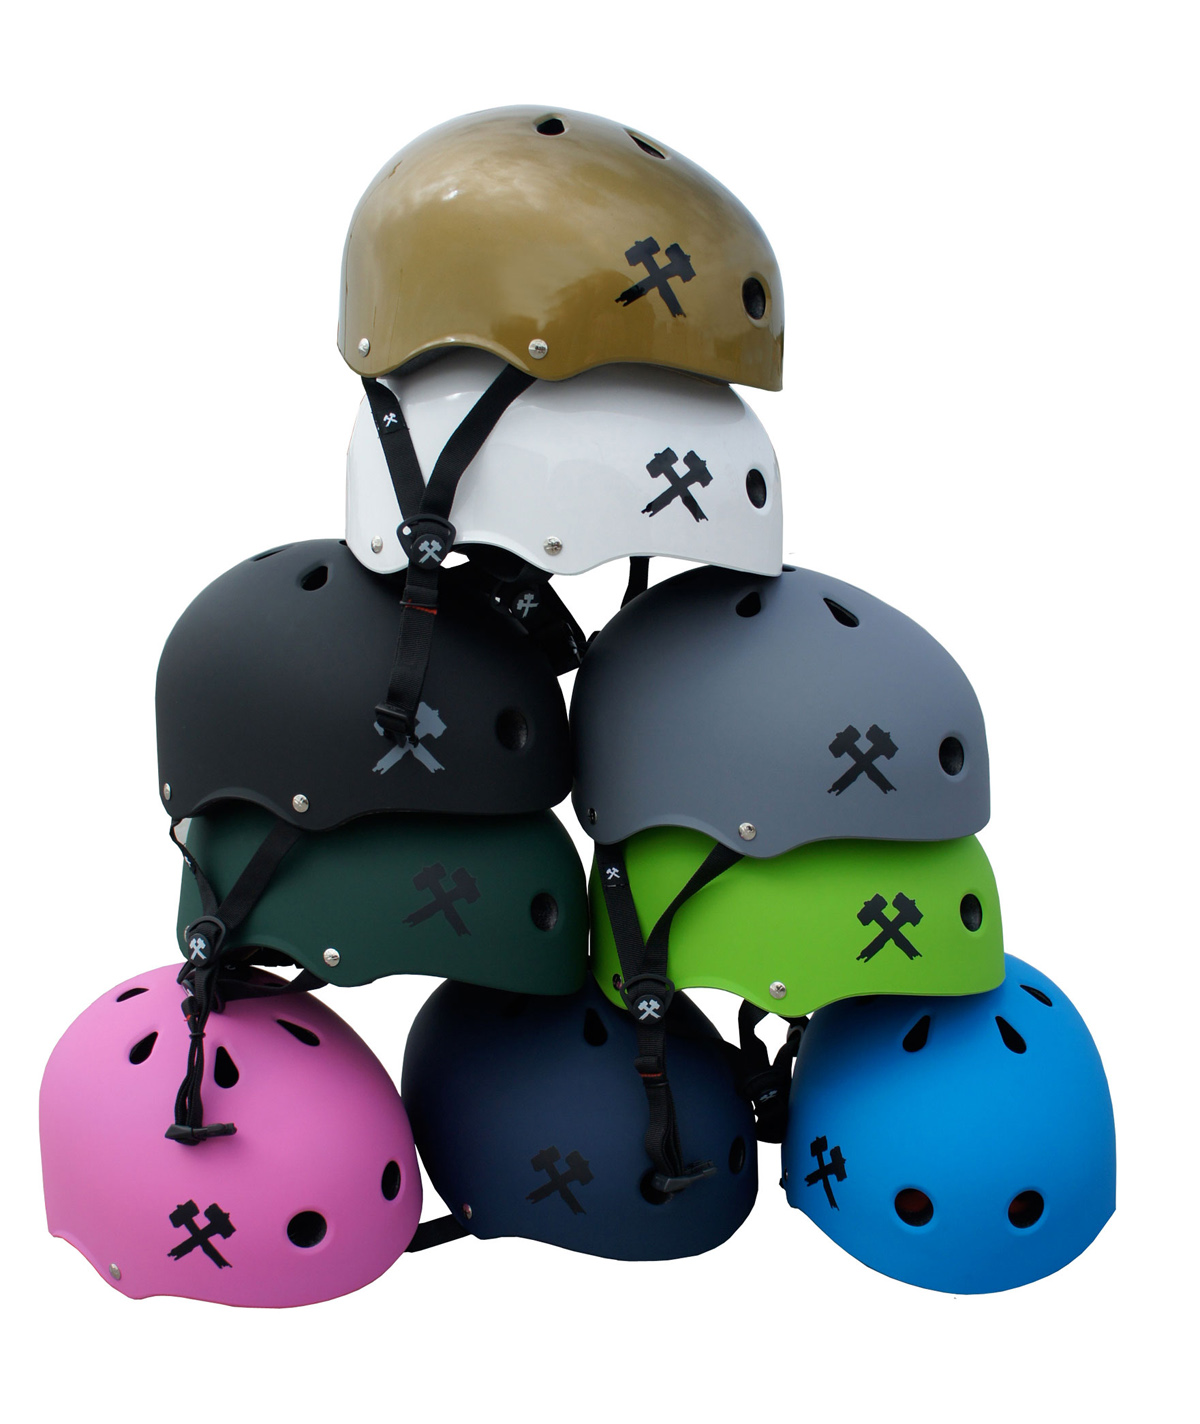 FINALLY BACK IN!      GET THE BEST HELMET FROM KILLEMALL DISTRO NOW IN OUR ONLINE DEALER STORE.